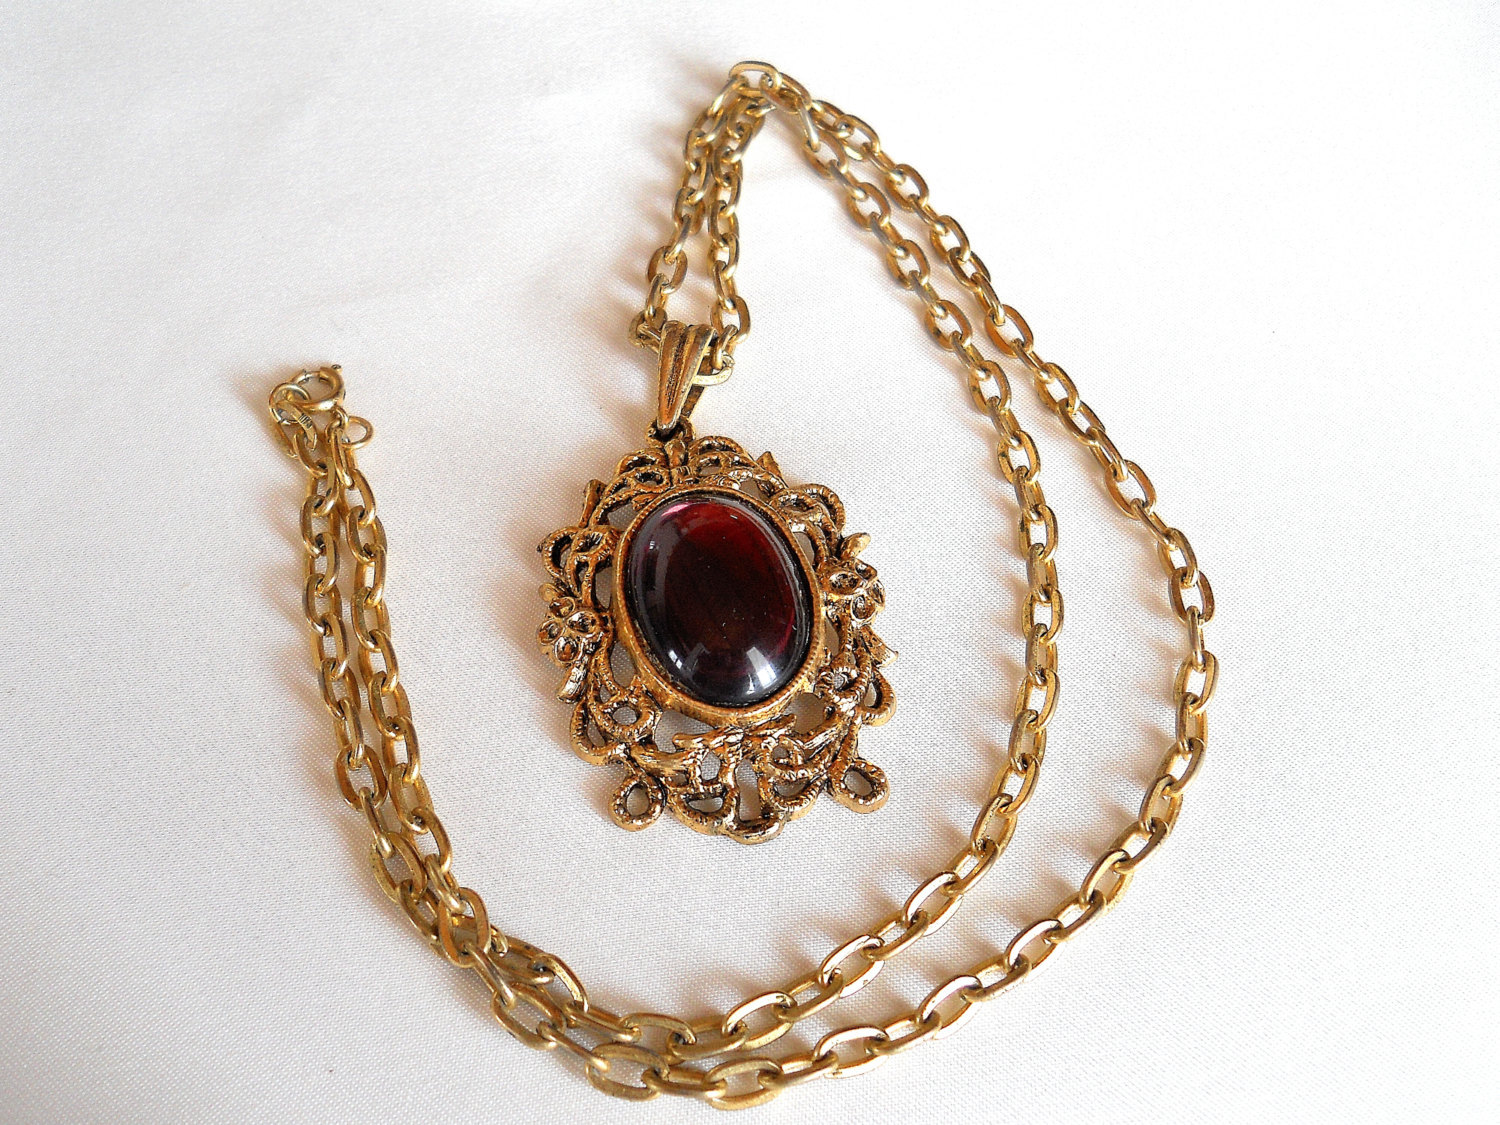 ON CLEARANCE: Vintage Gold Tone Pendant Necklace with Amethyst Oval Cabochon Pen image 3